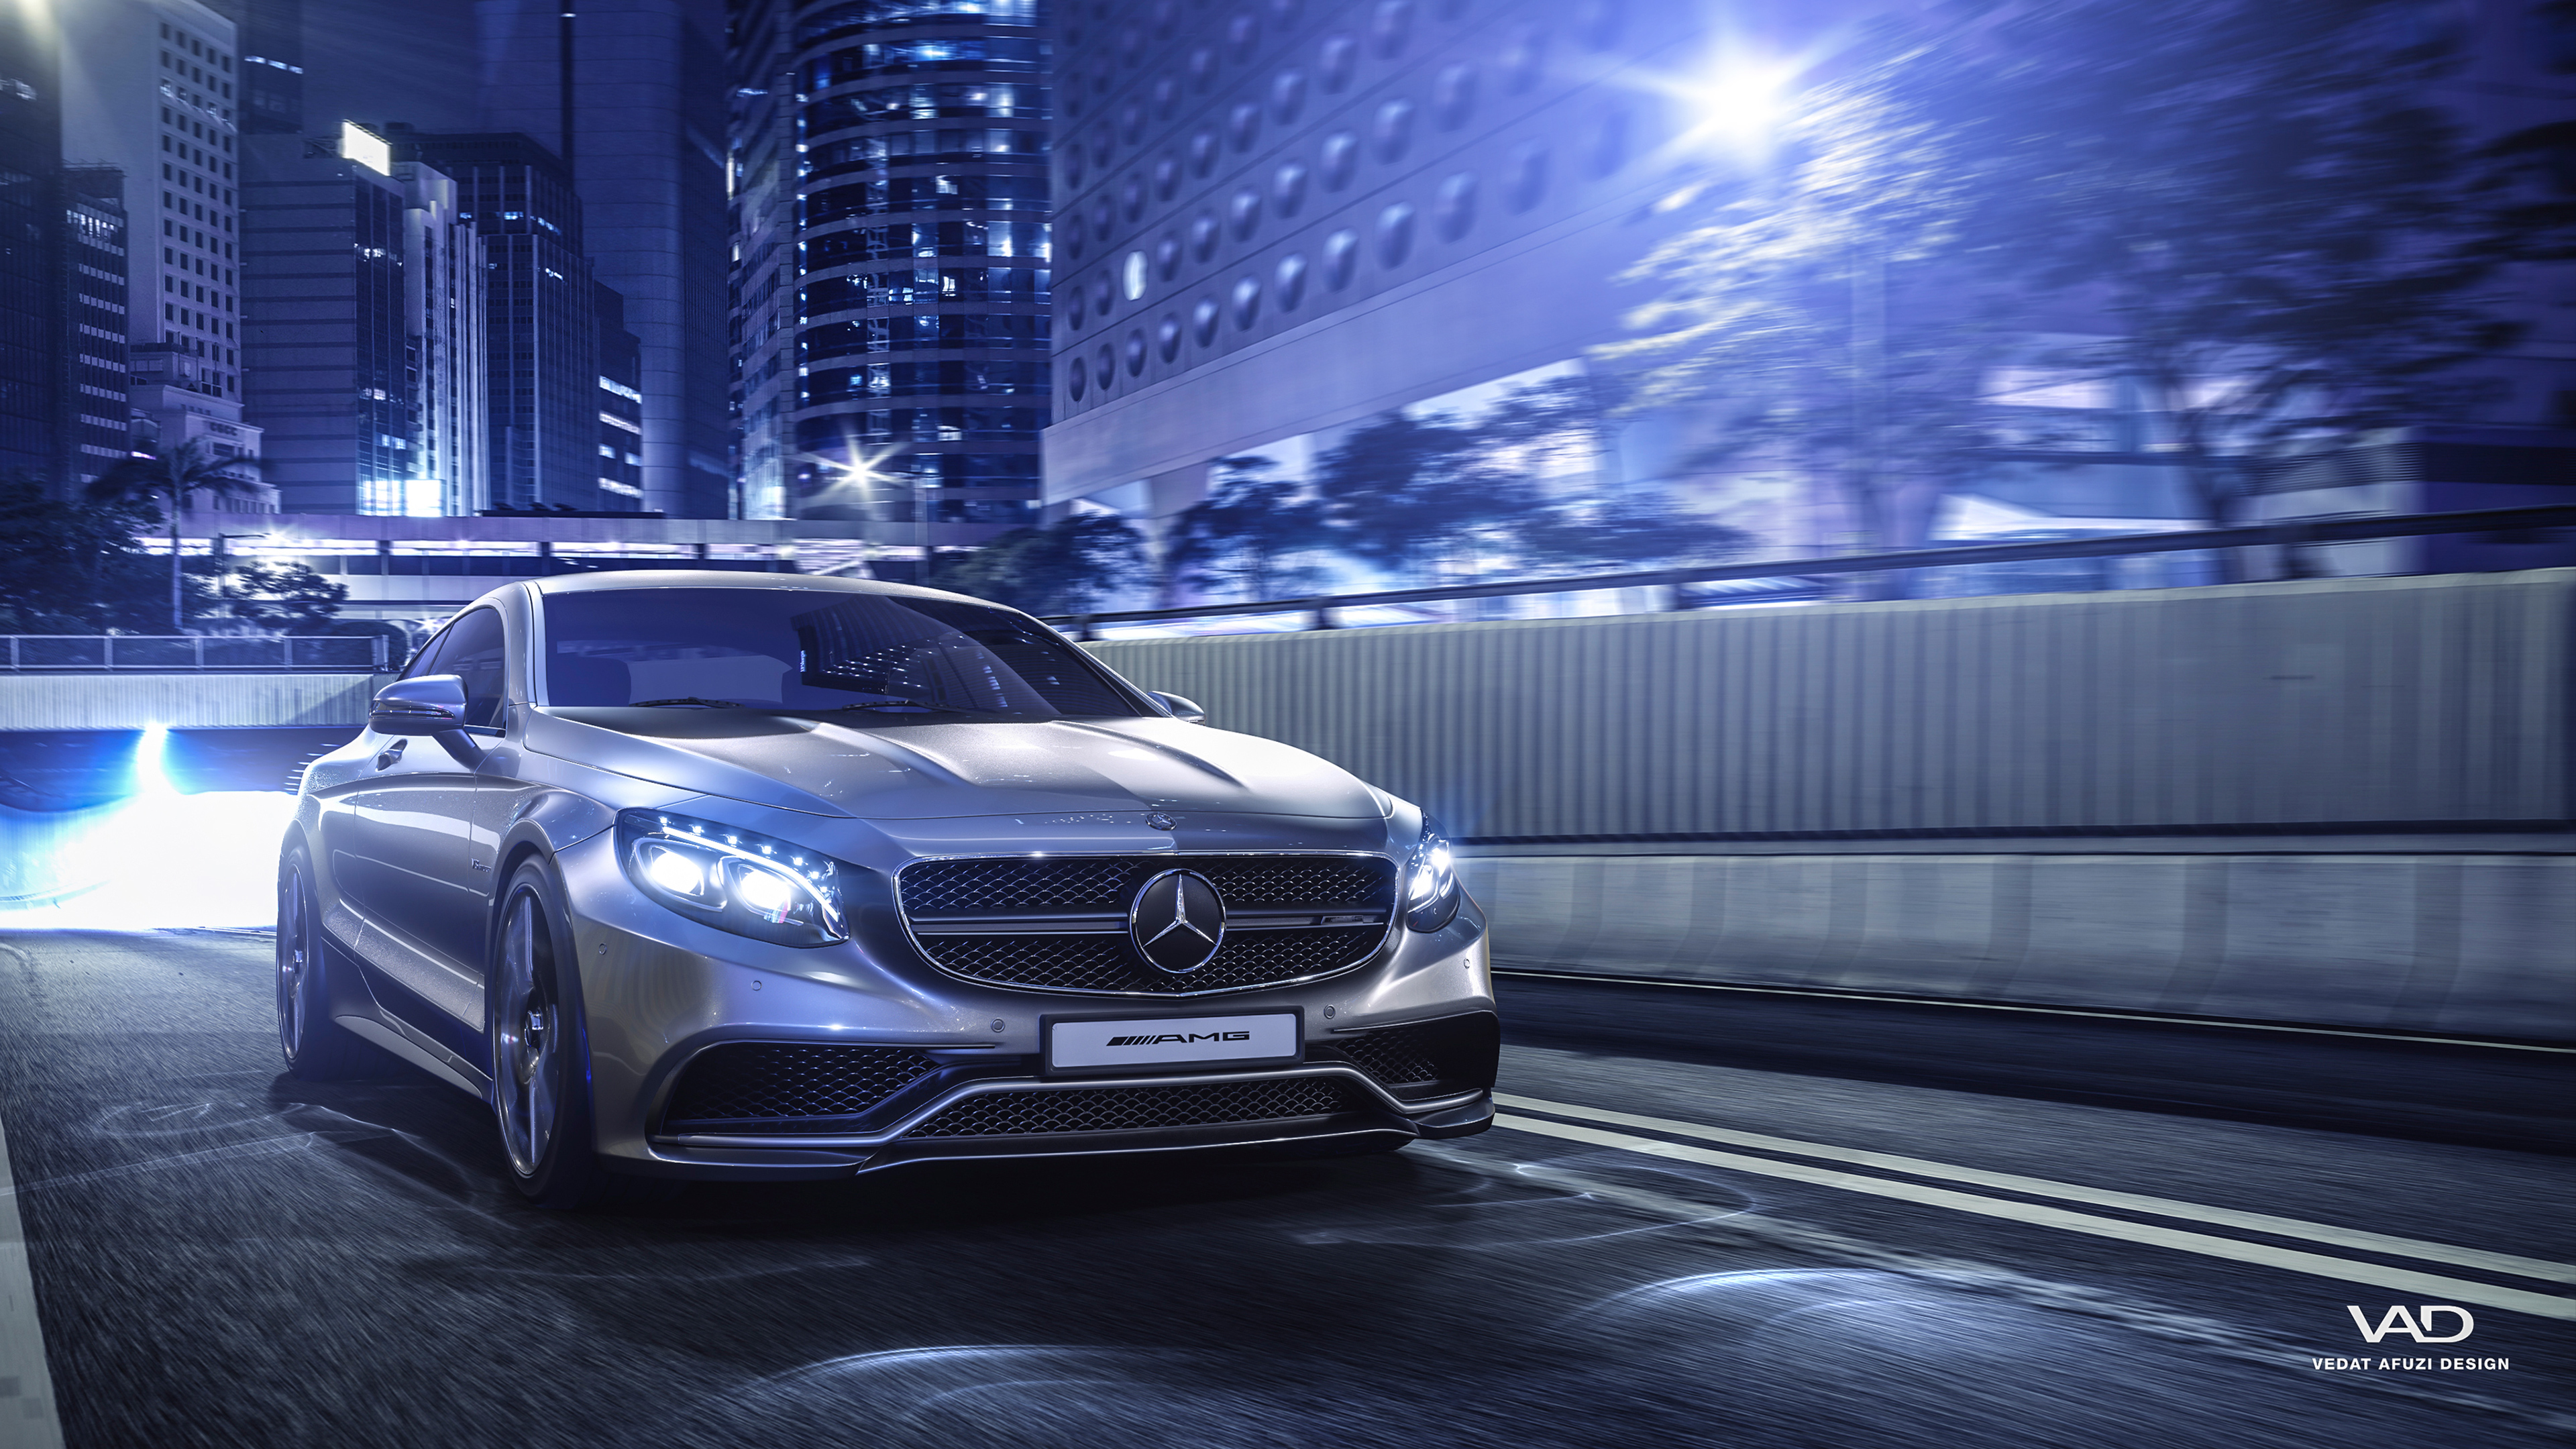 Mercedes Benz S Coupe AMG 4K Wallpaper  HD Car Wallpapers  ID 8438